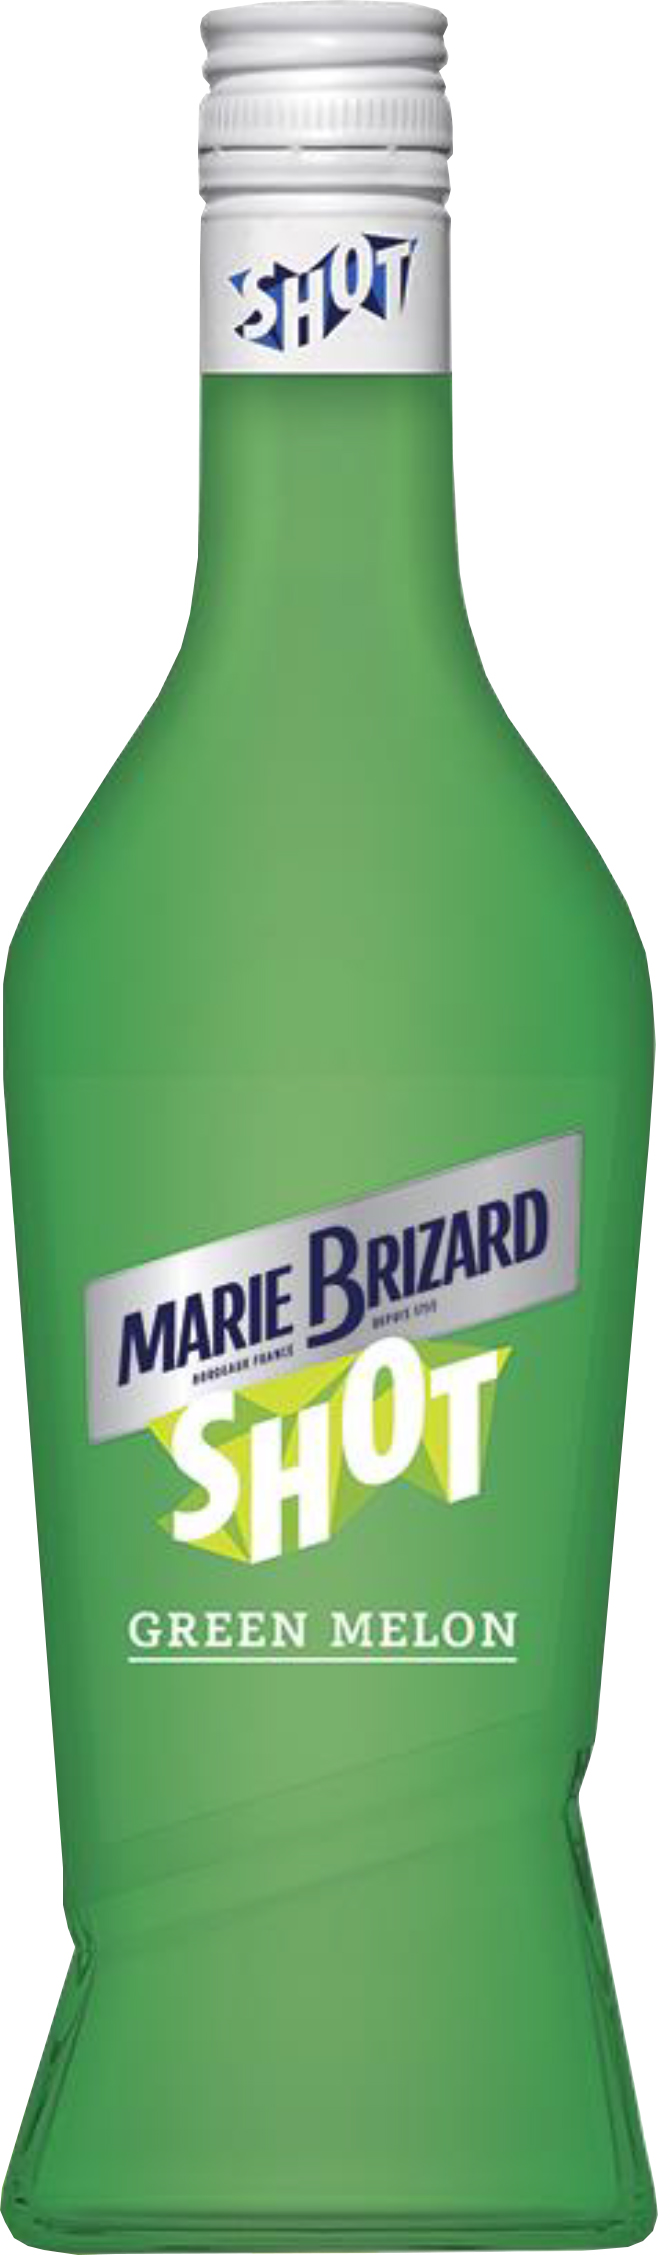 Marie Brizard Green Melon